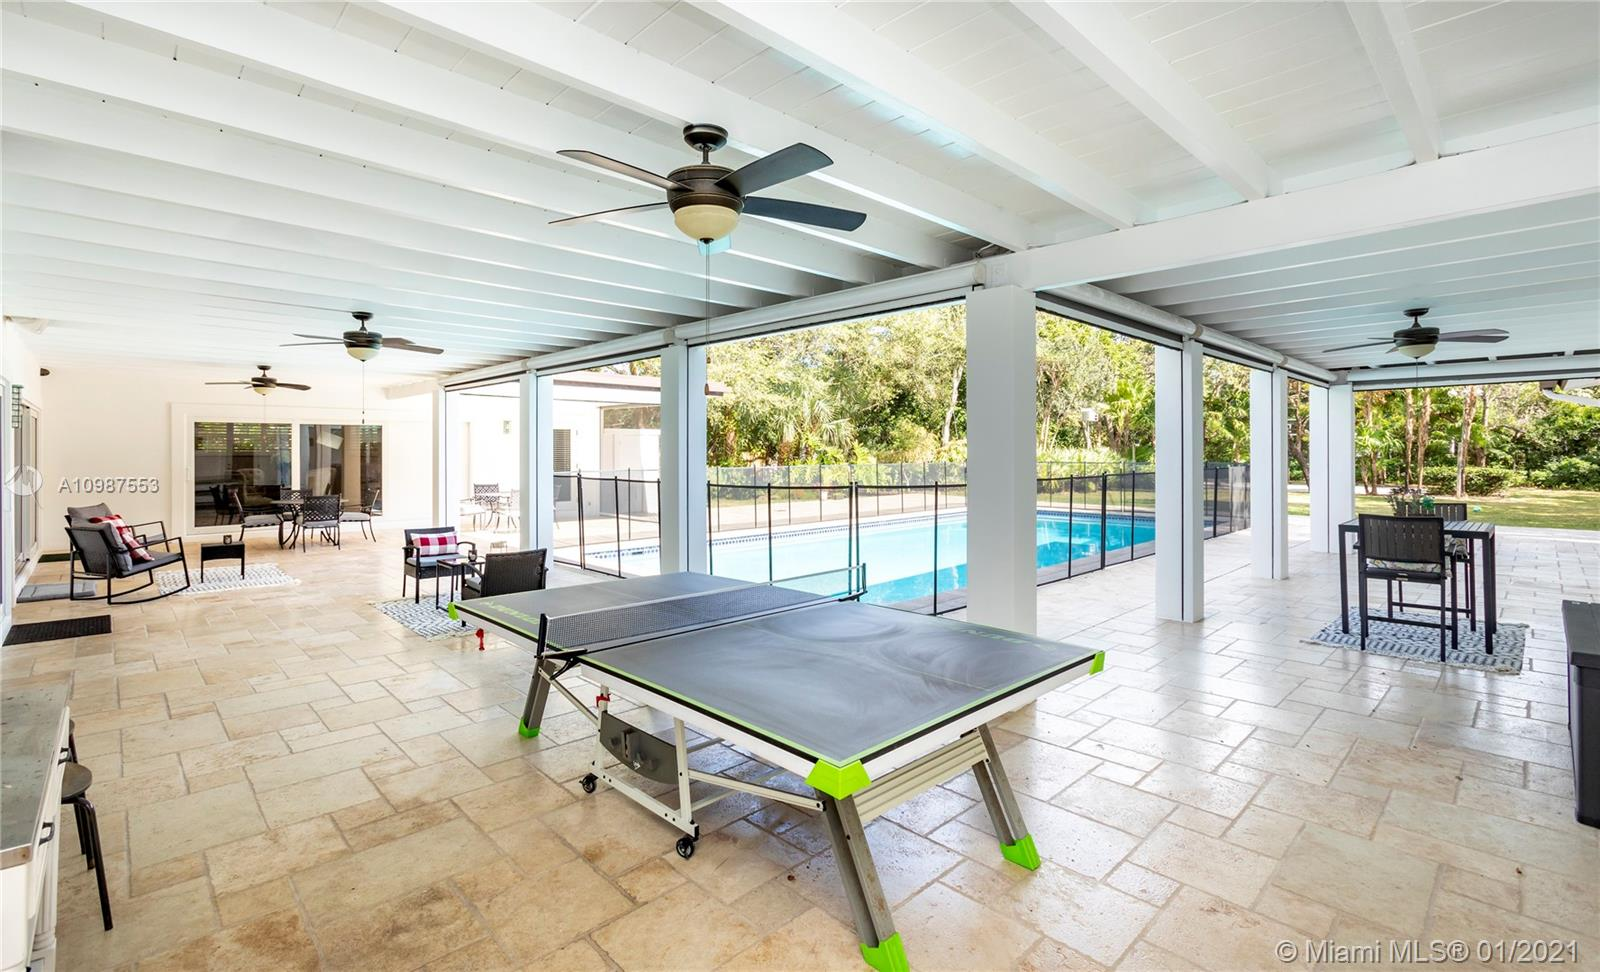 12085 SW 65th Ave, Pinecrest, Florida 33156, 5 Bedrooms Bedrooms, ,4 BathroomsBathrooms,Residential,For Sale,12085 SW 65th Ave,A10987553